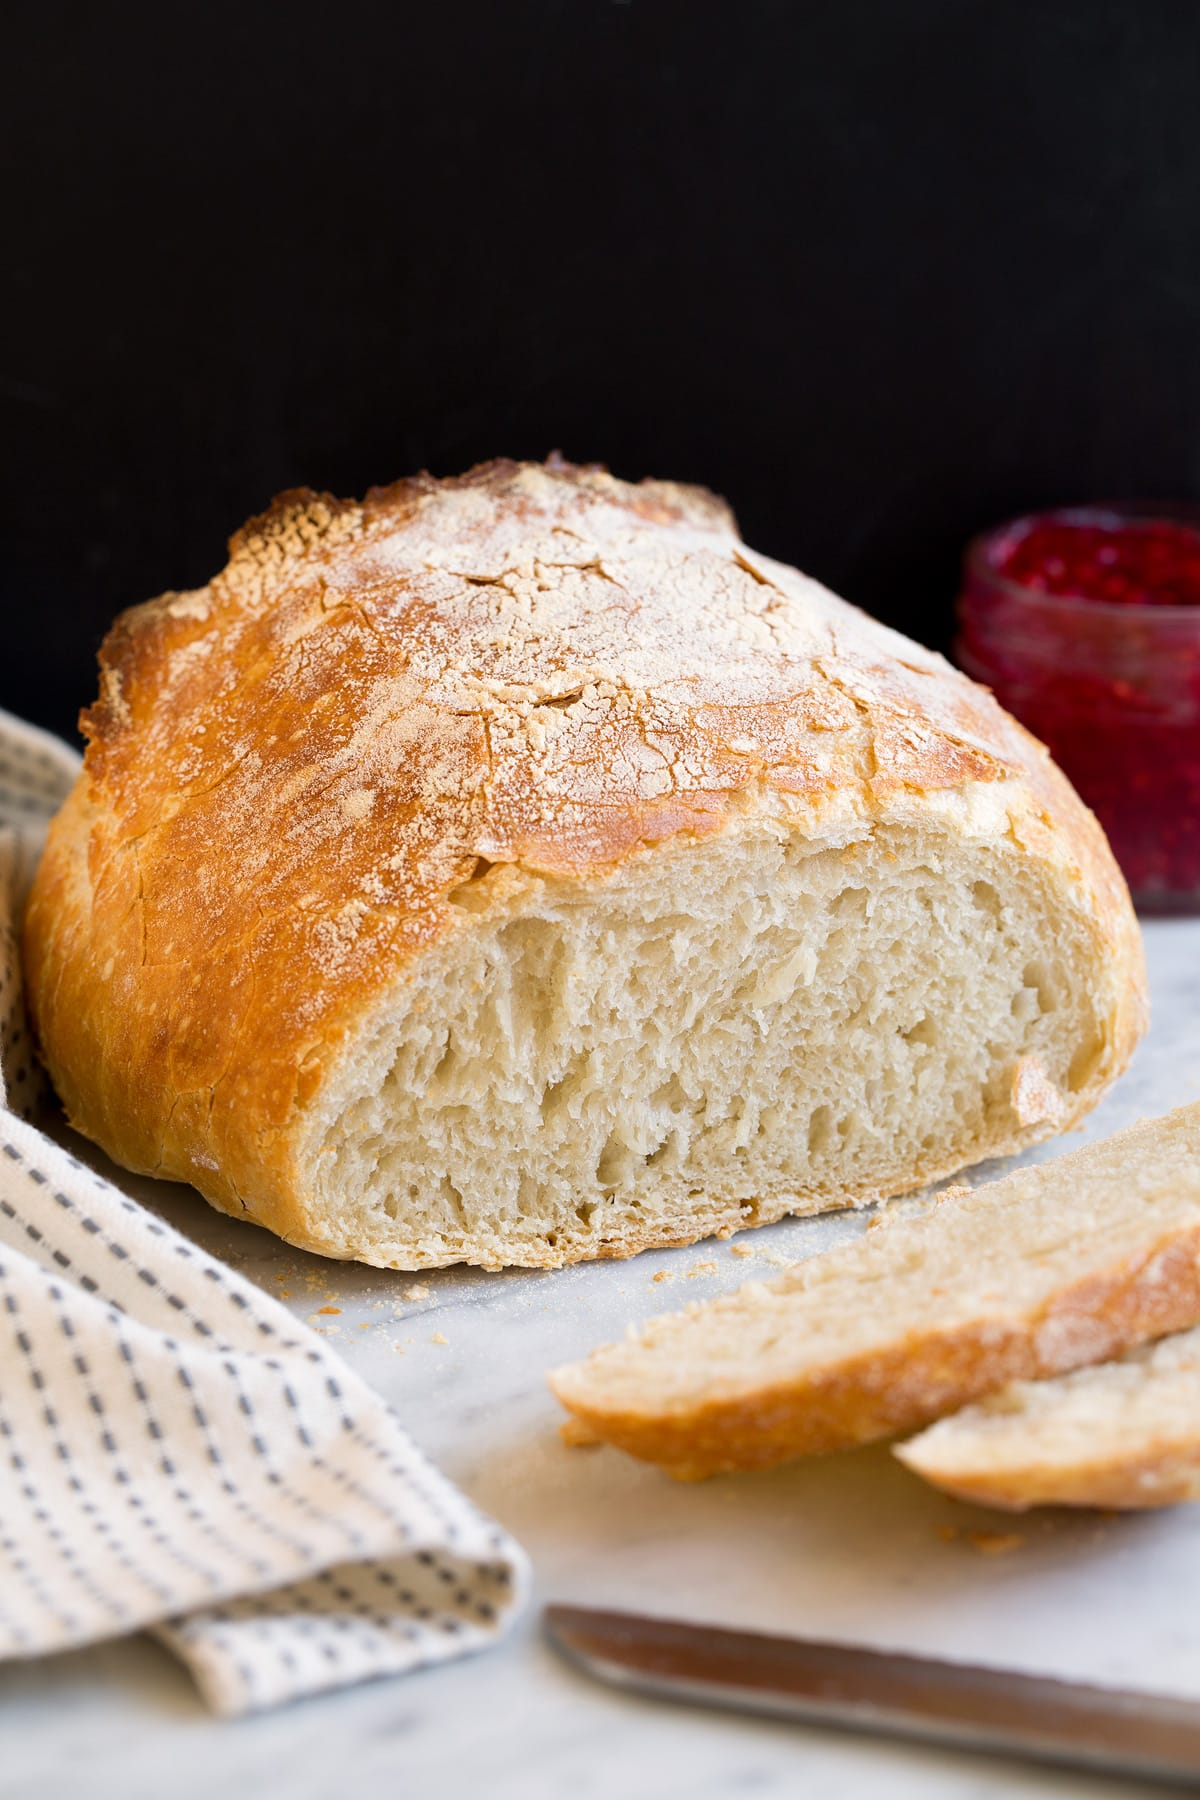 No knead bread shown with a few pieces sliced of to show interior texture.